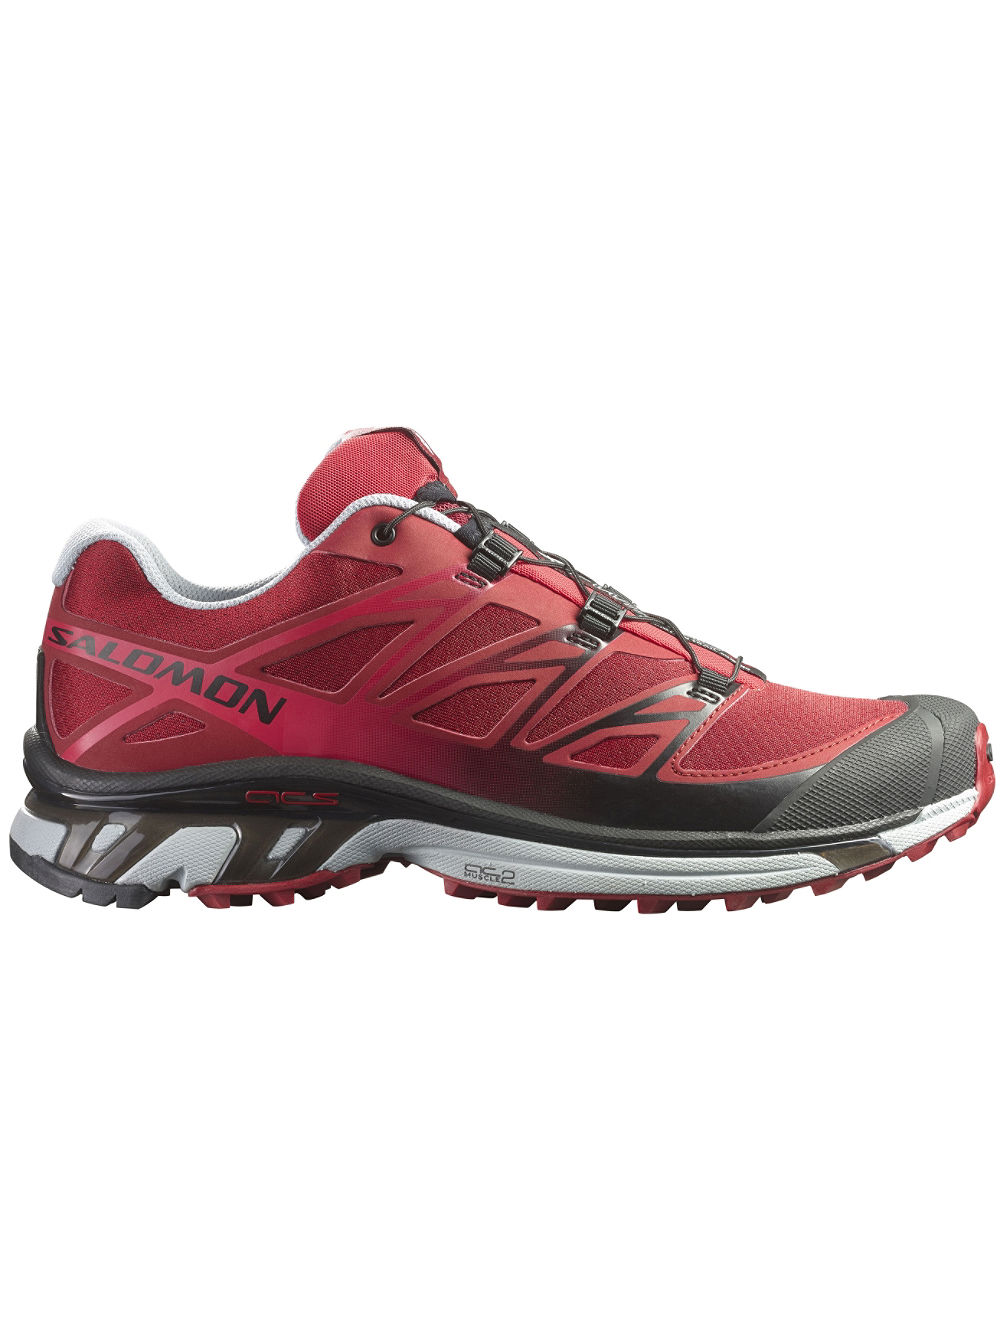 Los Angeles aebac 6f3b8 XT Wings 3 Outdoor Shoes